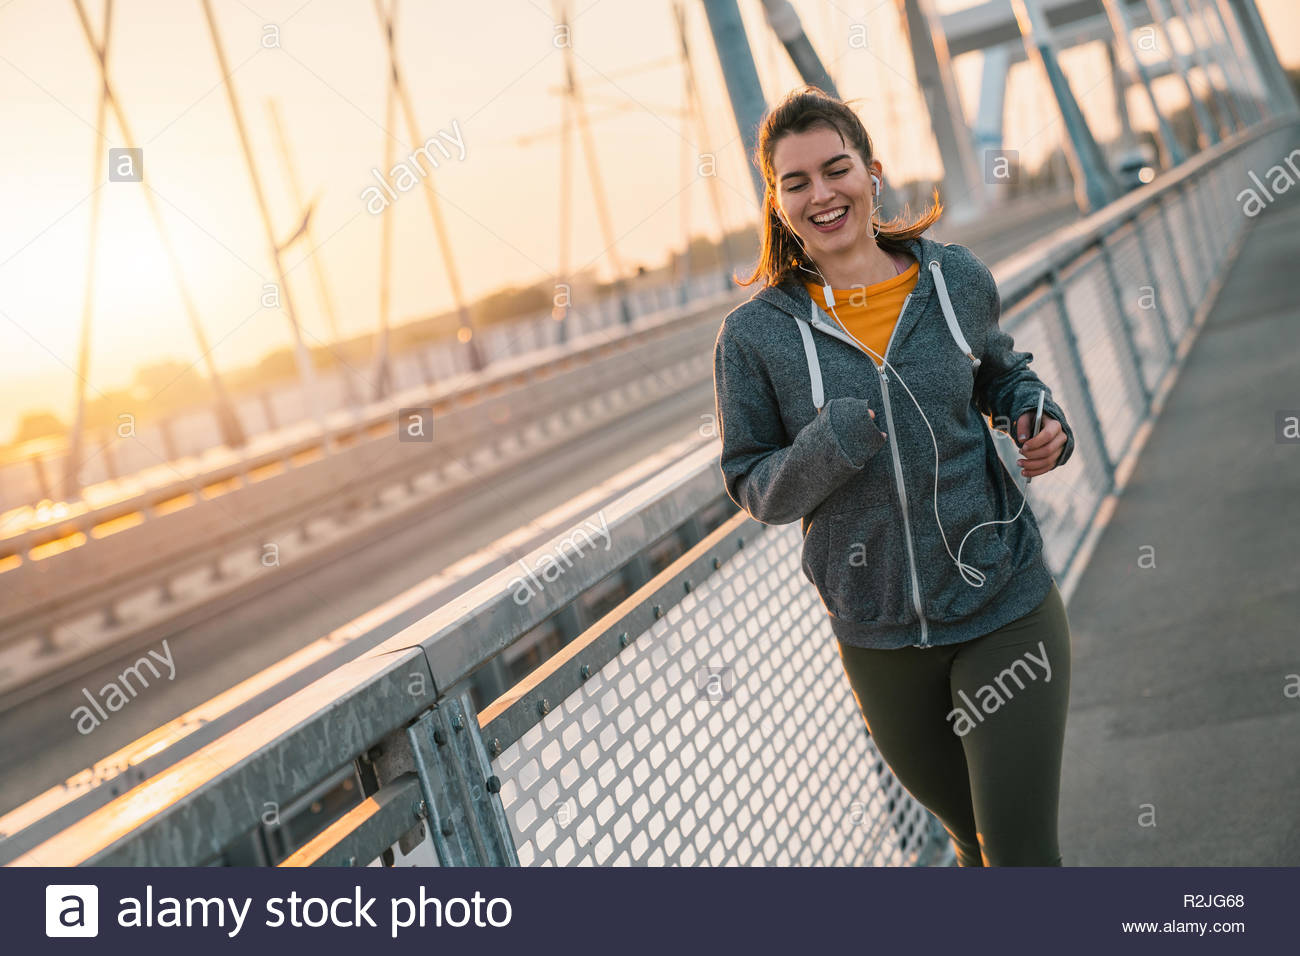 Young sportswoman jogging while smiling and listening to music on a bridge at sunset. - Stock Image